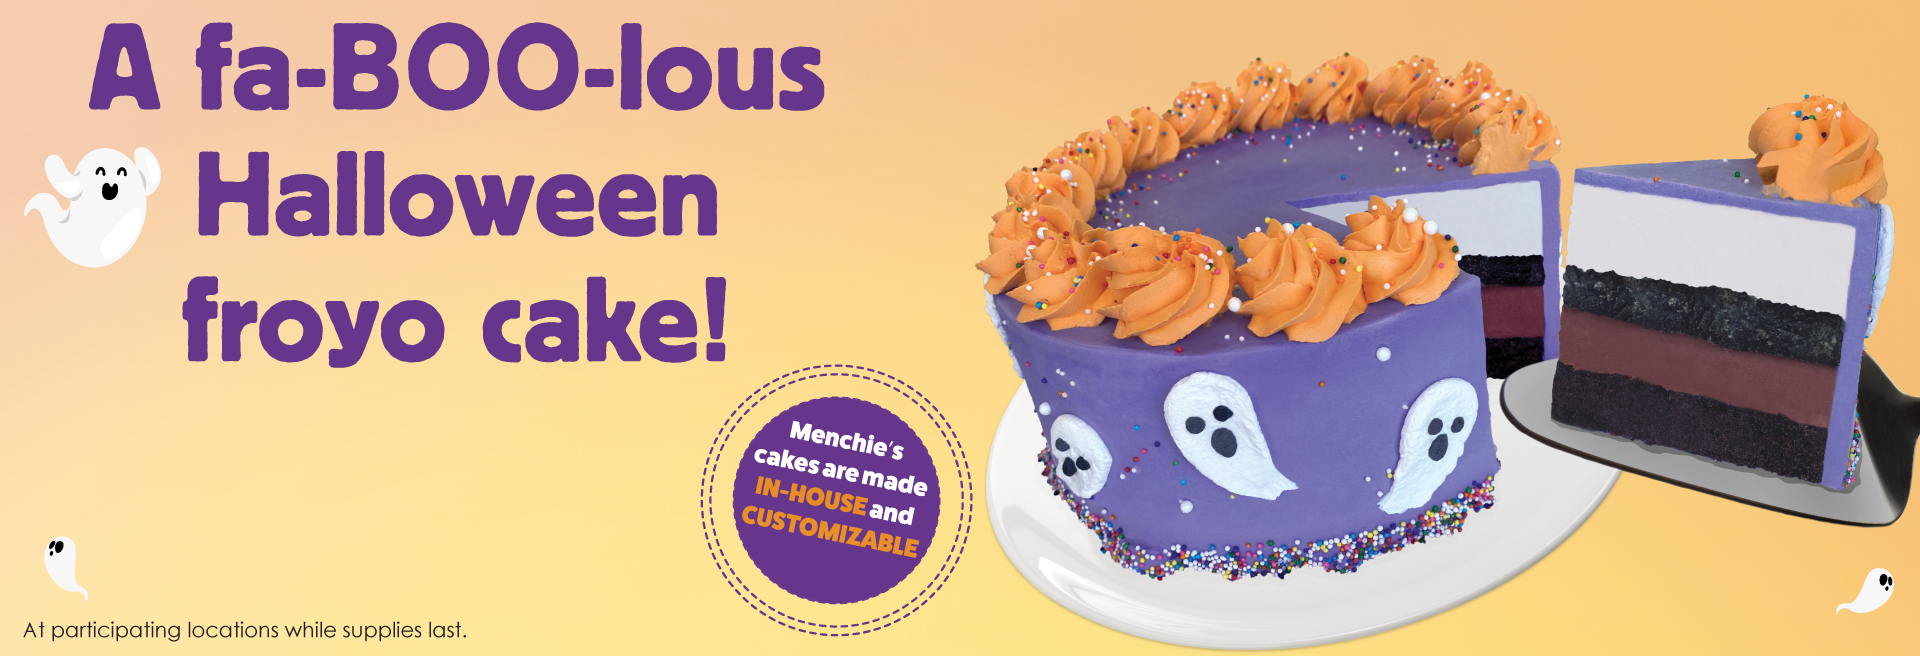 This Halloween, something better than ice cream cake awaits you. Menchie's Spooky Boo froyo cake is a great addition to any Halloween festivity – it's BOO-licious!